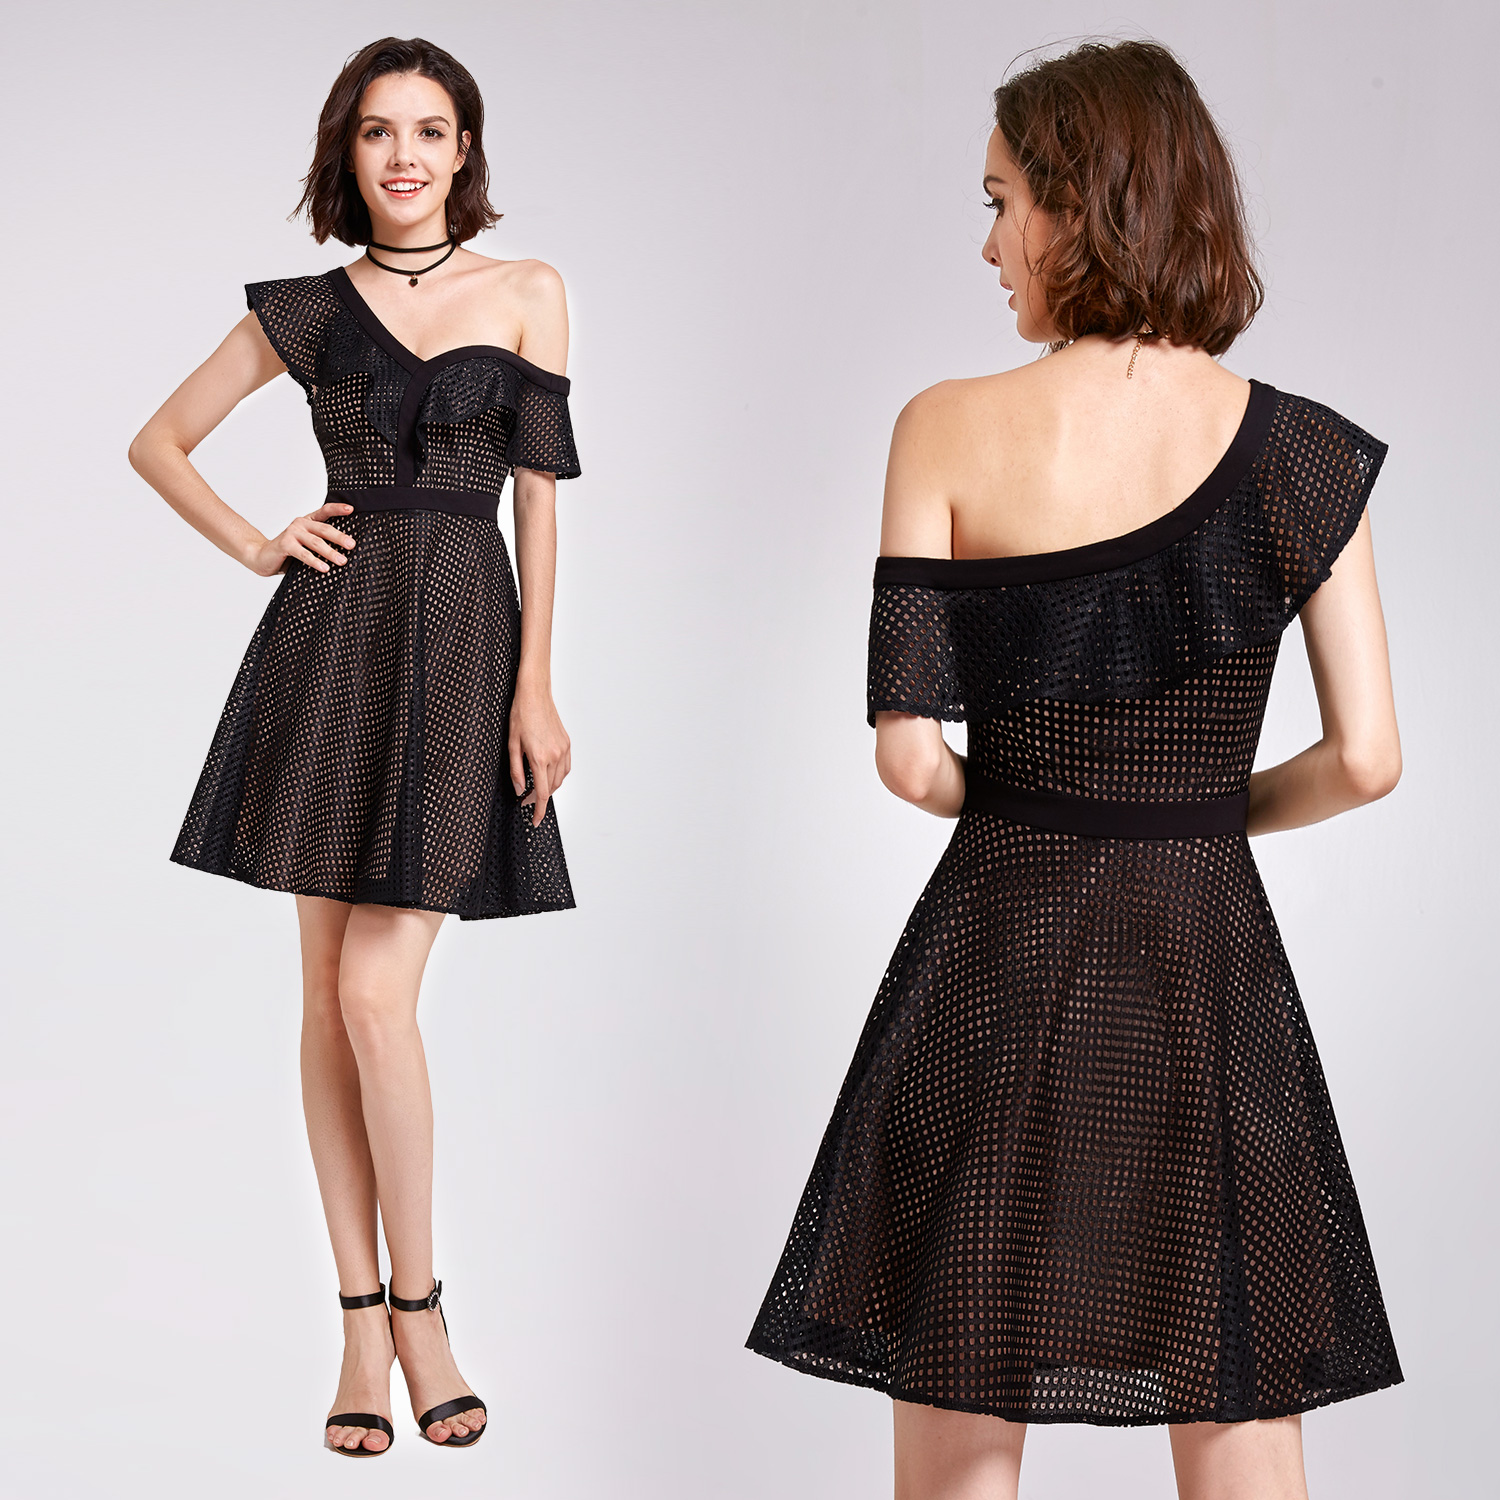 d6a8241bb63c Alisa Pan Mini Ruffles Little Black Dress Short Cocktail Party ...